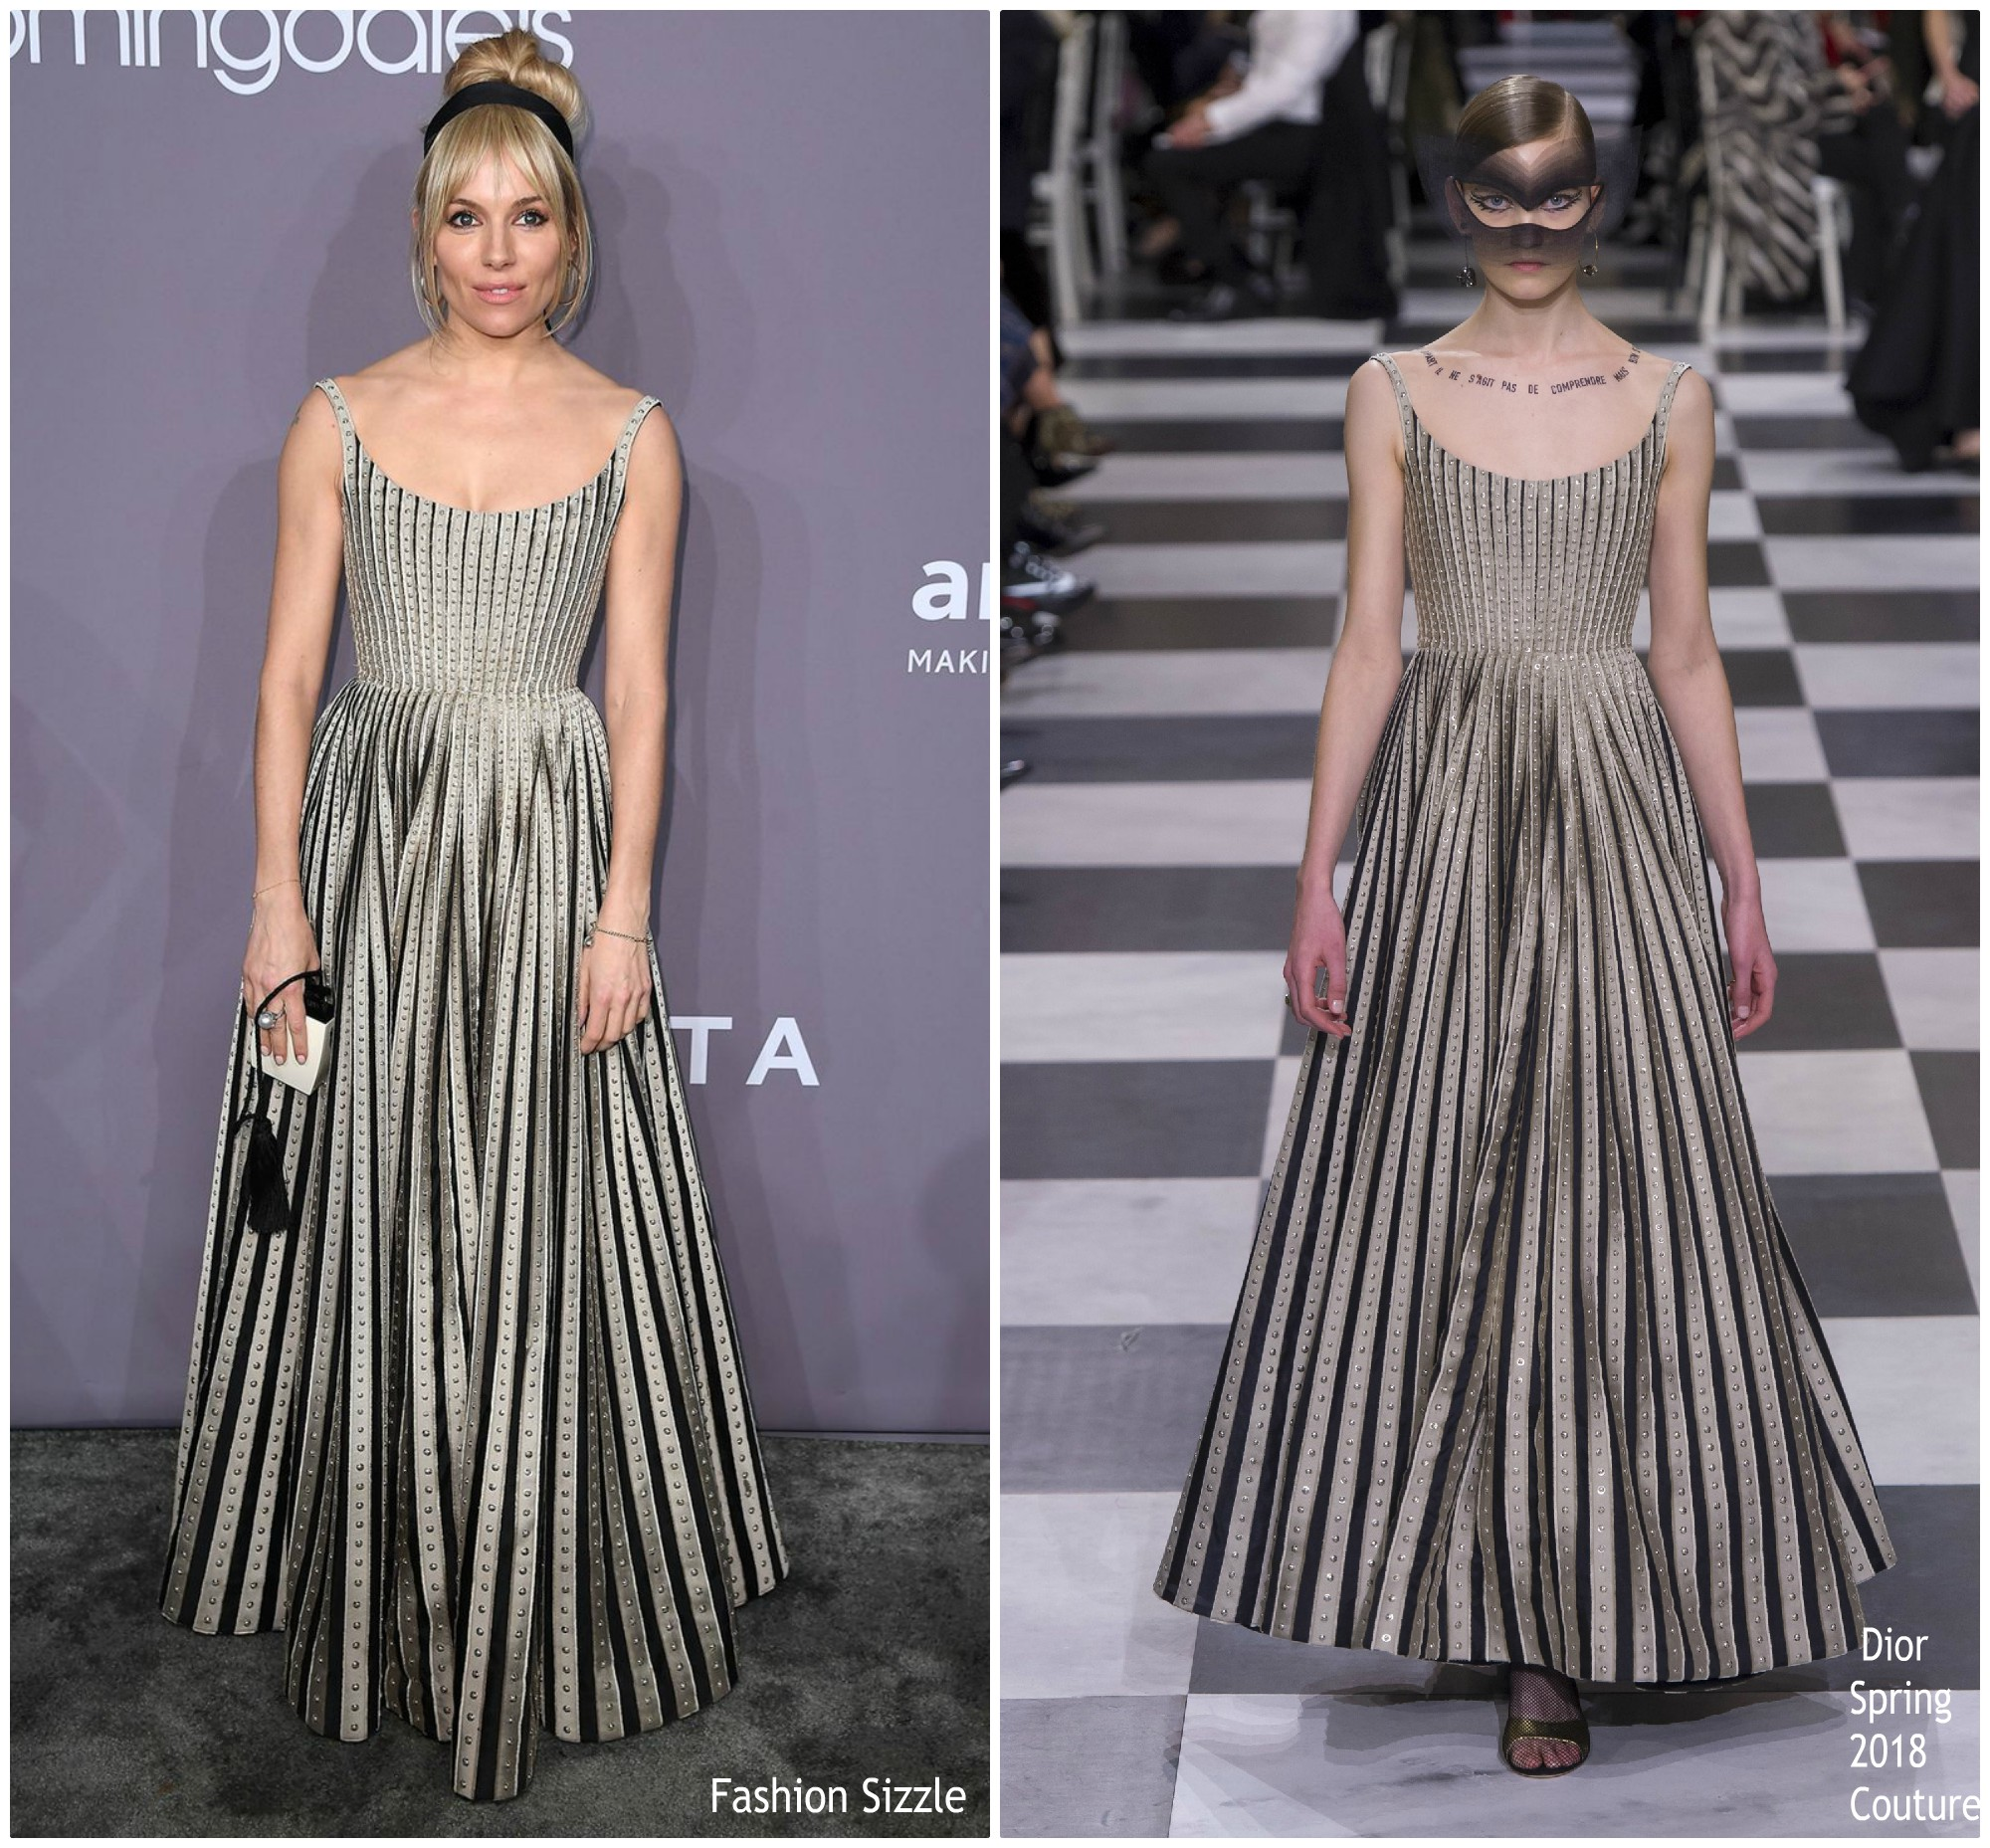 sienna-miller-in-christian-dior-couture-2018-amfar-gala-new-york